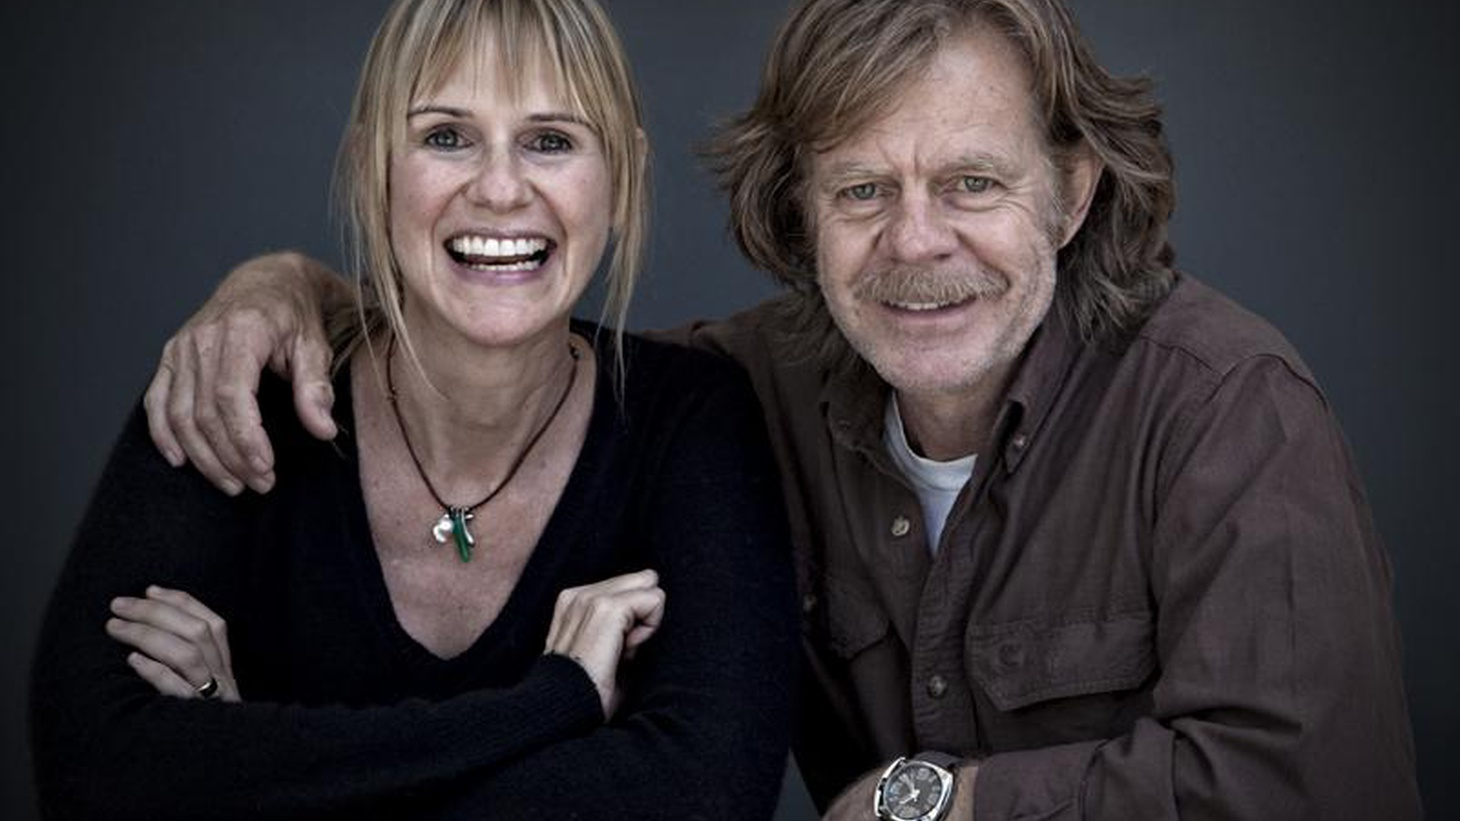 Emmy award-winning actor actor William H Macy selected some of the great songwriters of our time for his Guest DJ set. Not content with silly love songs, he's looking for something more meaningful and finds it in the work of Paul Simon, Bob Dylan, Randy Newman and more.